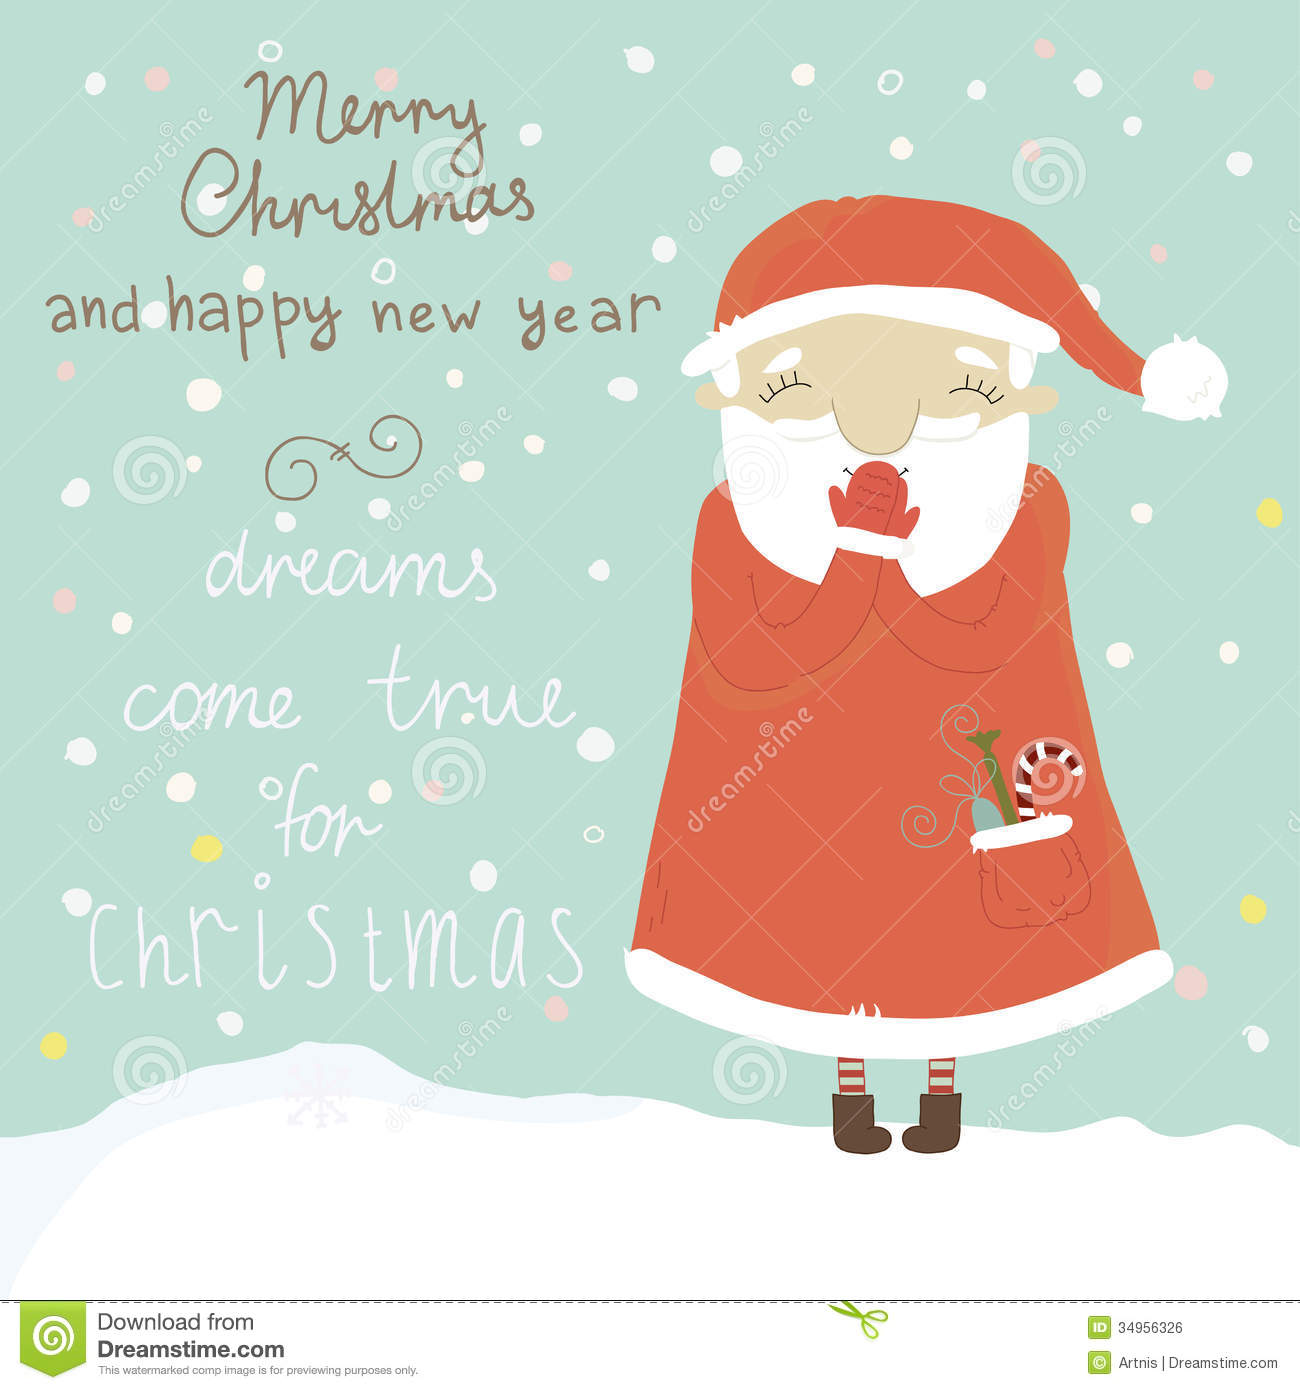 Christmas Greeting Card With Santa Claus Stock Vector Illustration